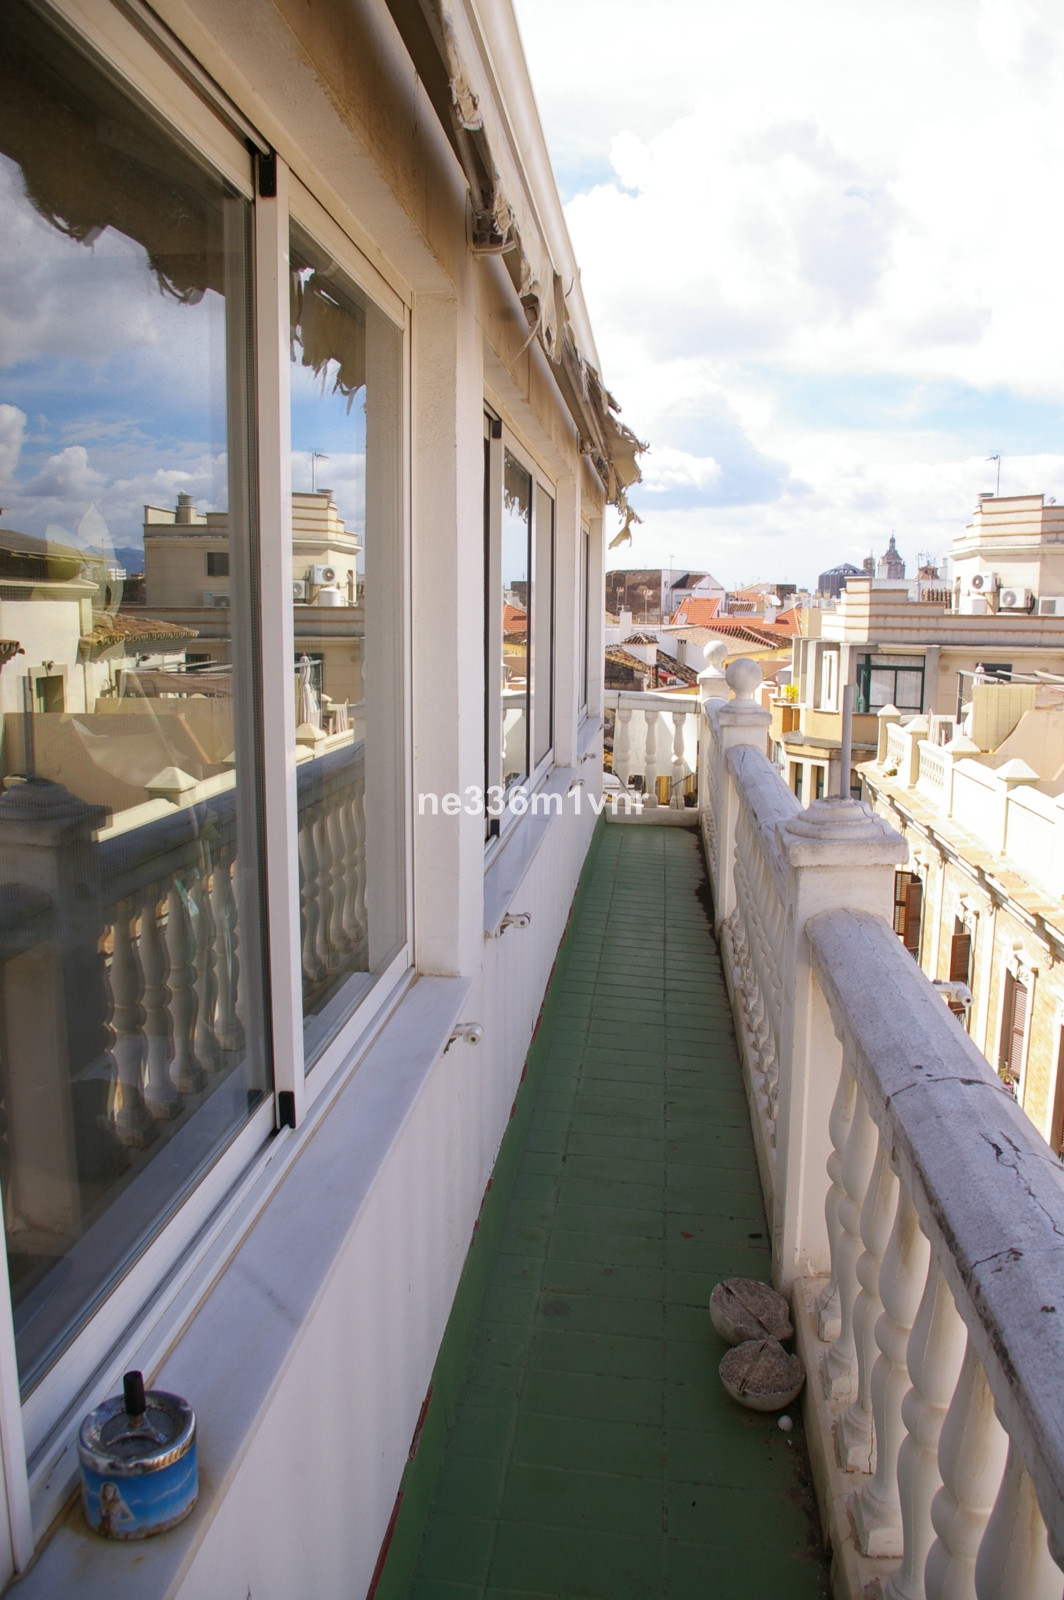 Great opportunity to have your apartment in the center of malaga, 79 m2 to convert this office into Spain